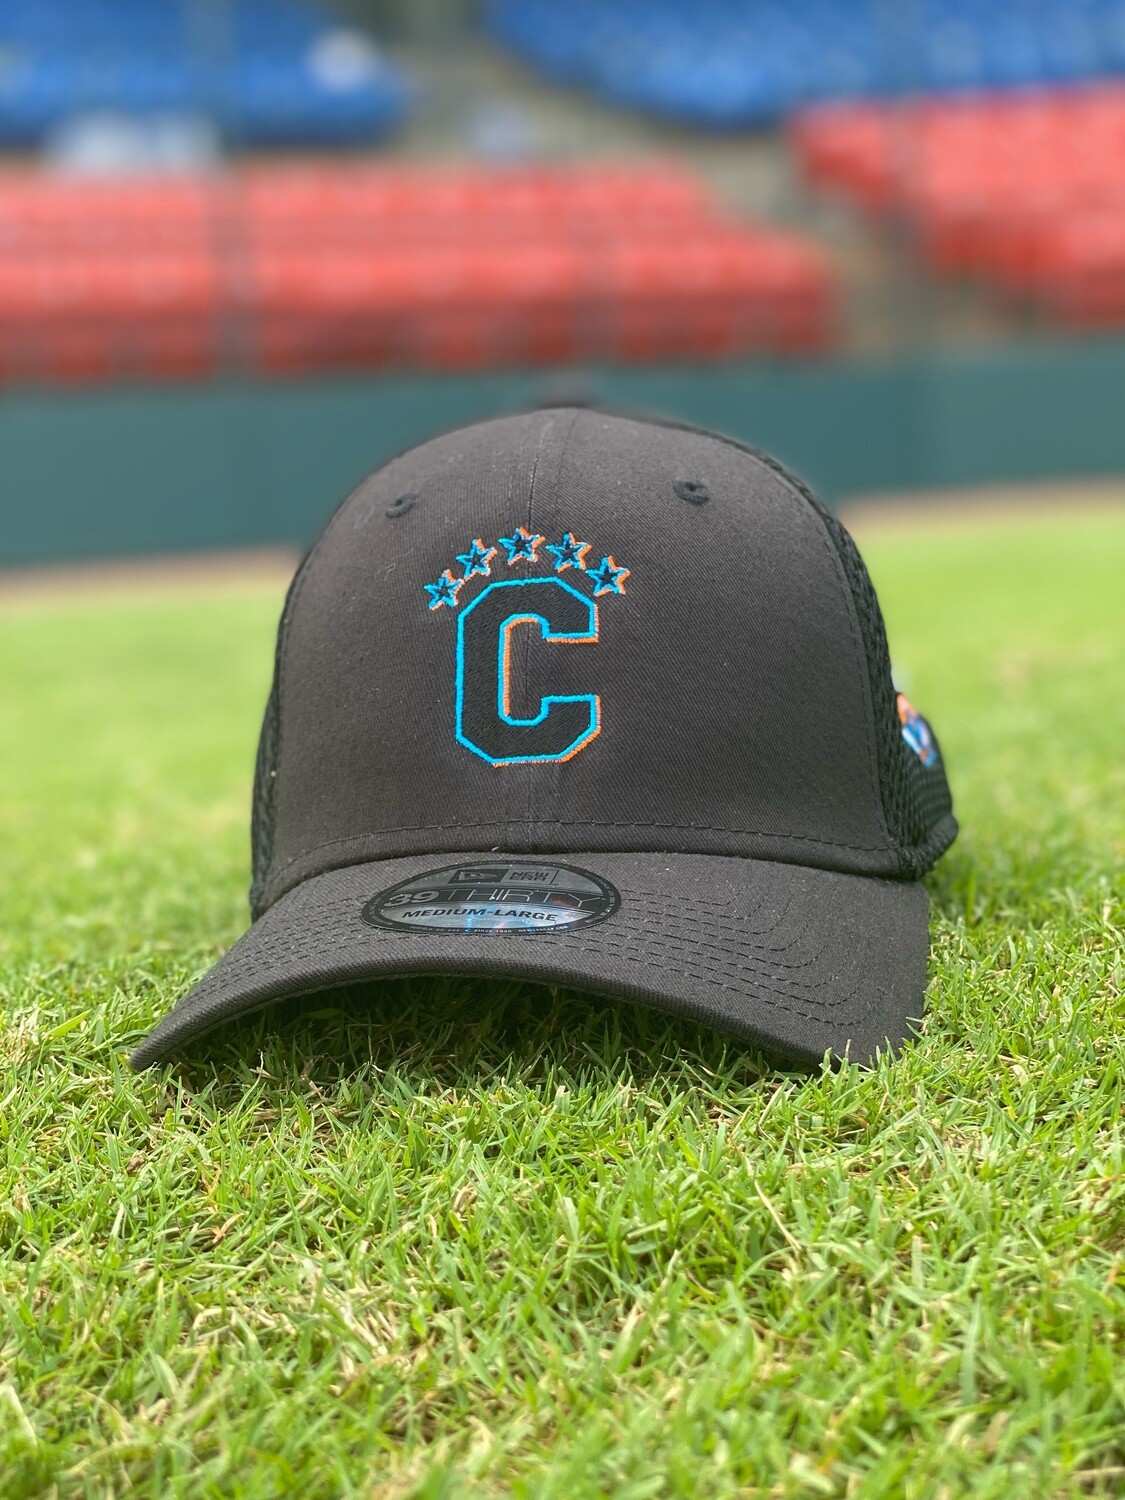 All-Star Game 2021 Hat